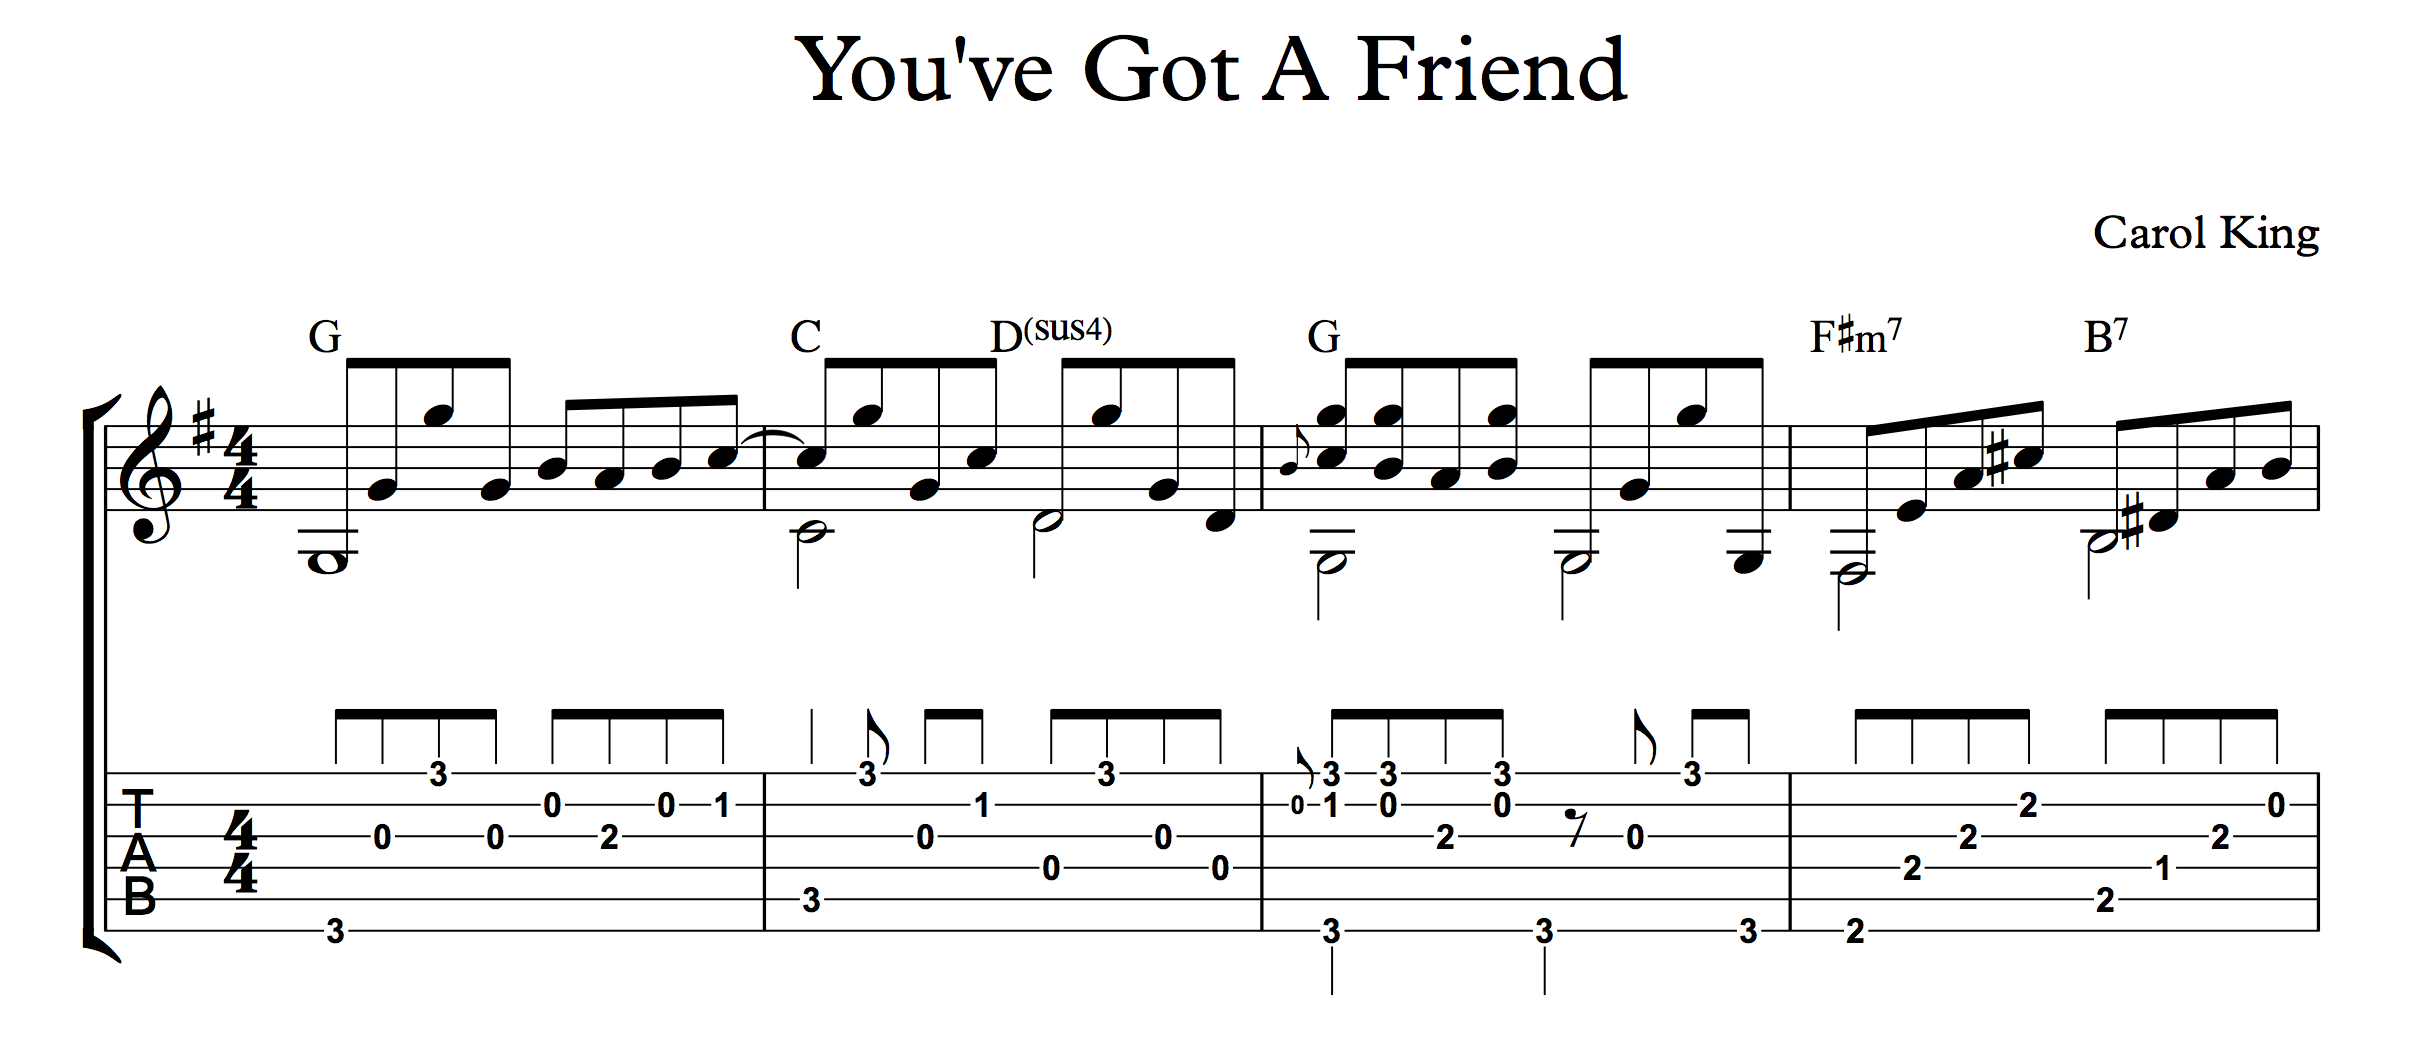 Youve Got A Friend Guitar Chords And Words